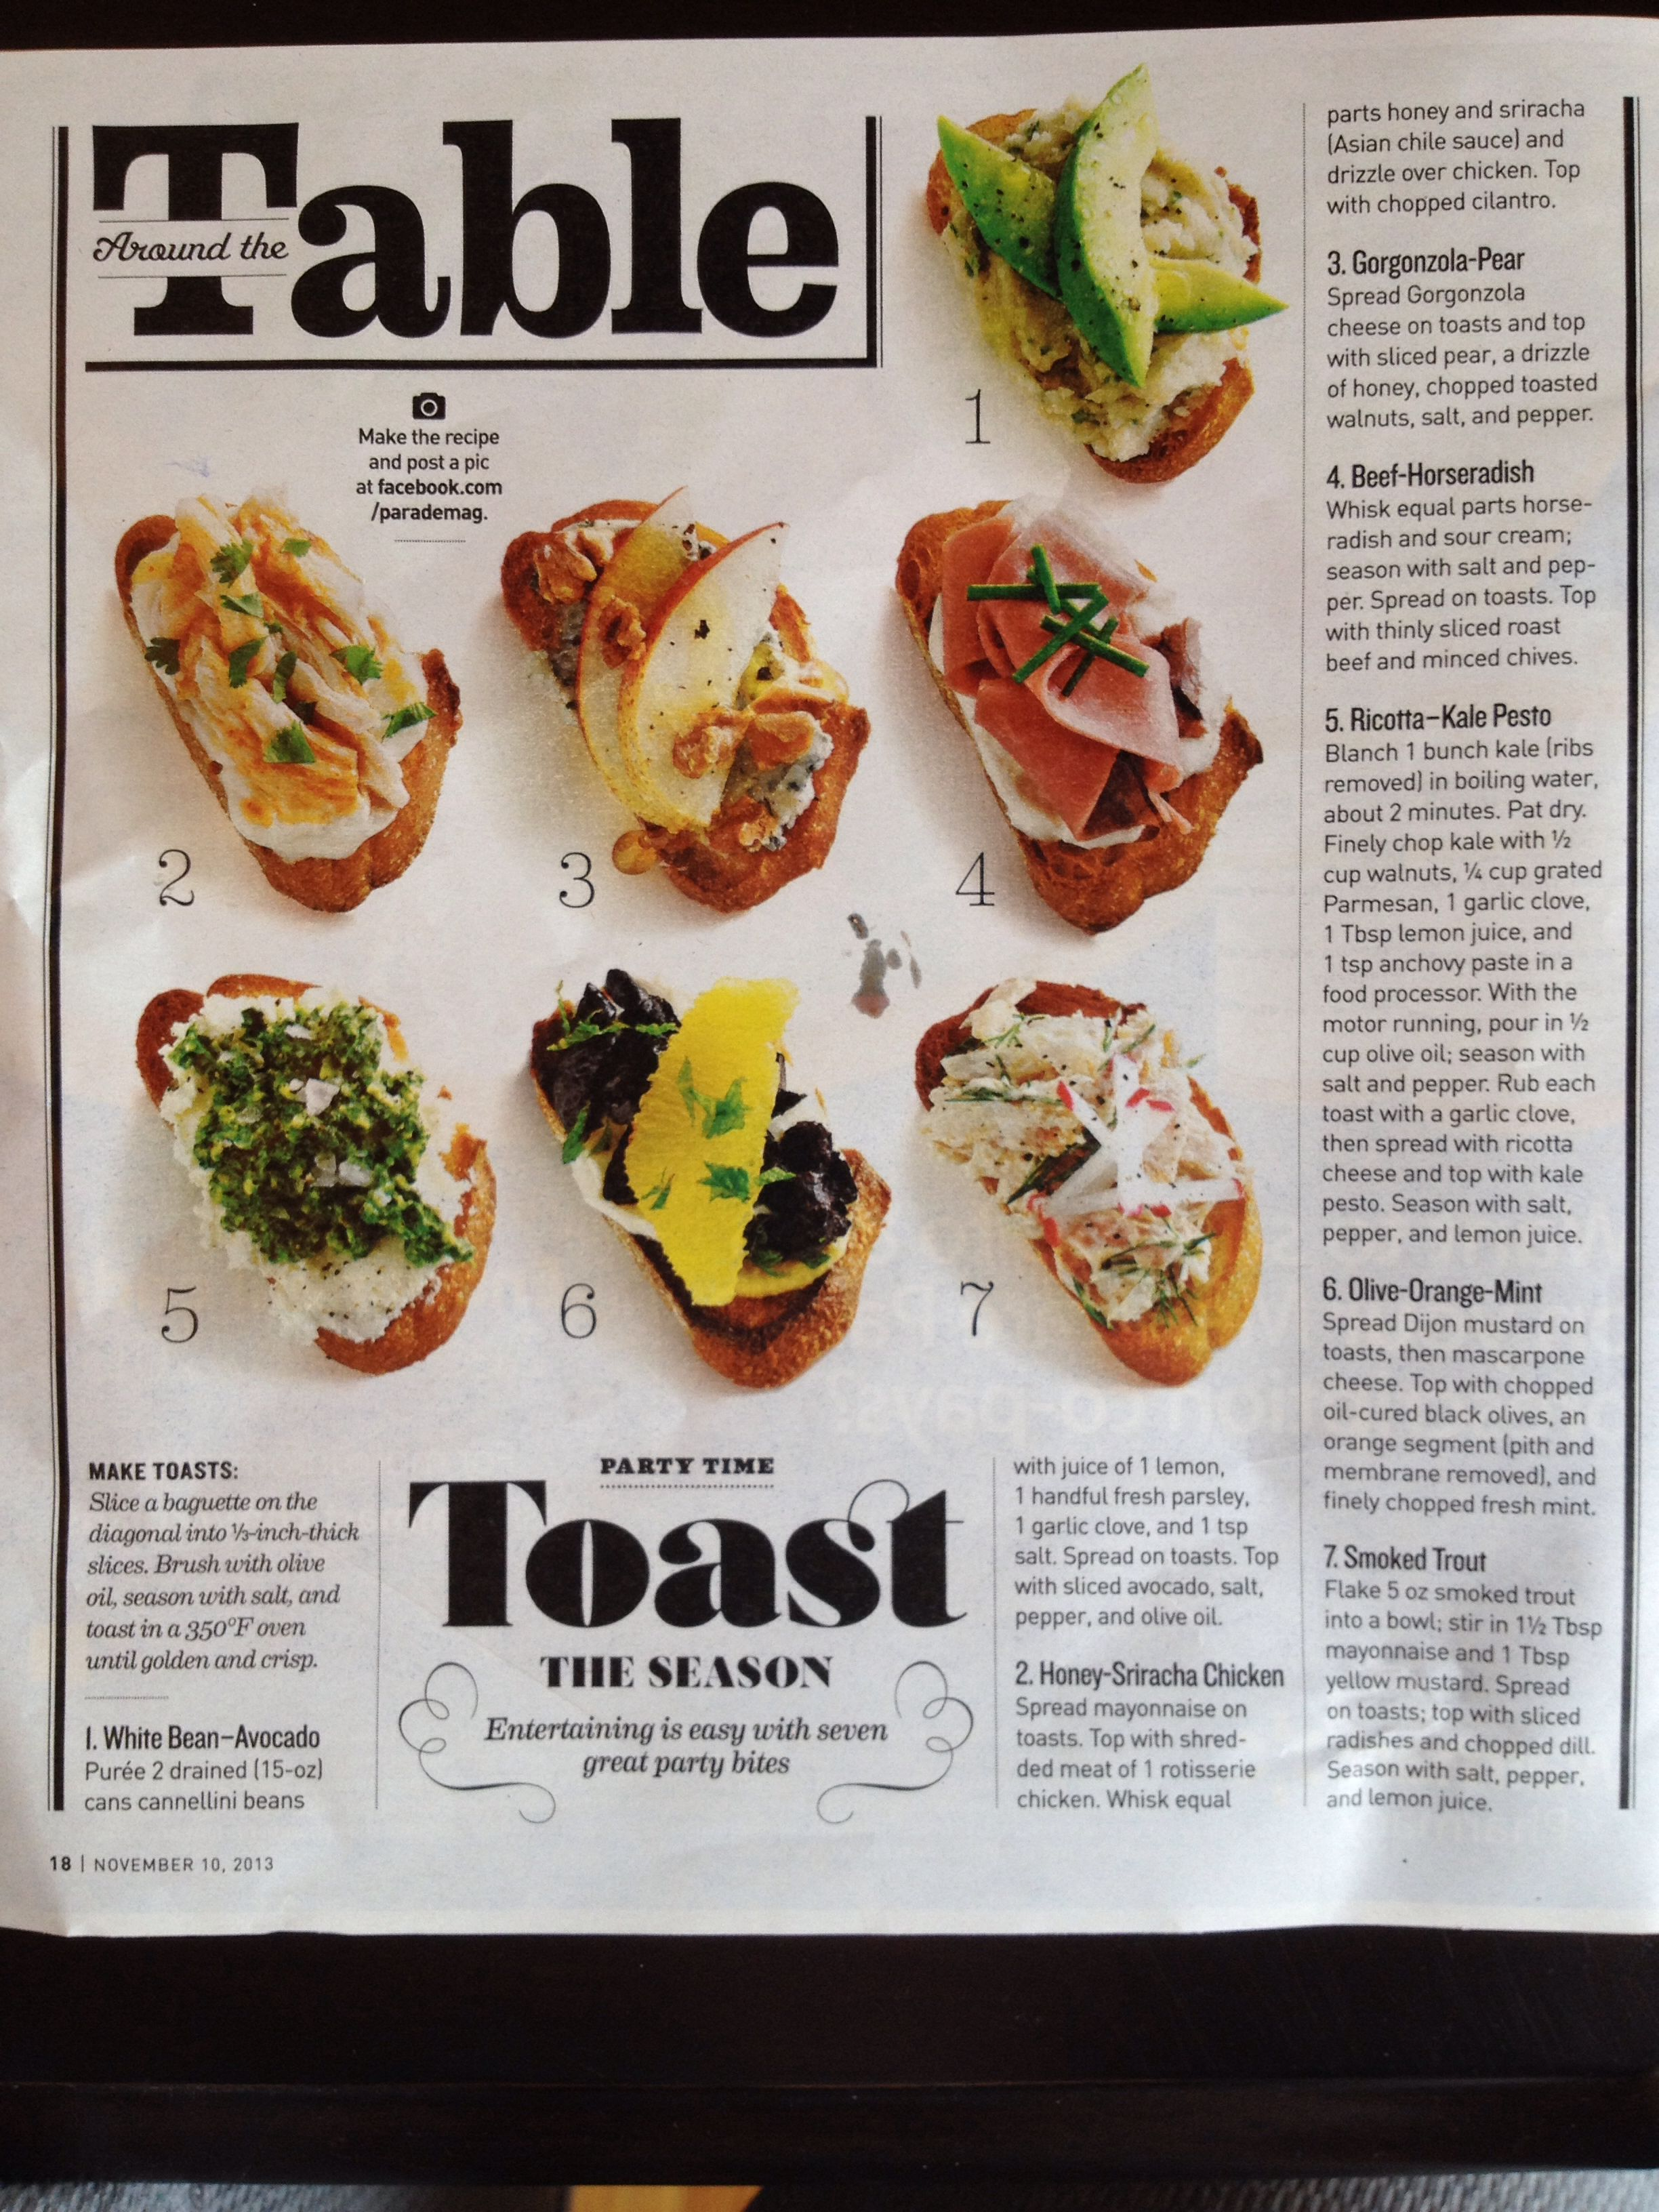 Toast of the Season - appetizer ideas in Parade magazine